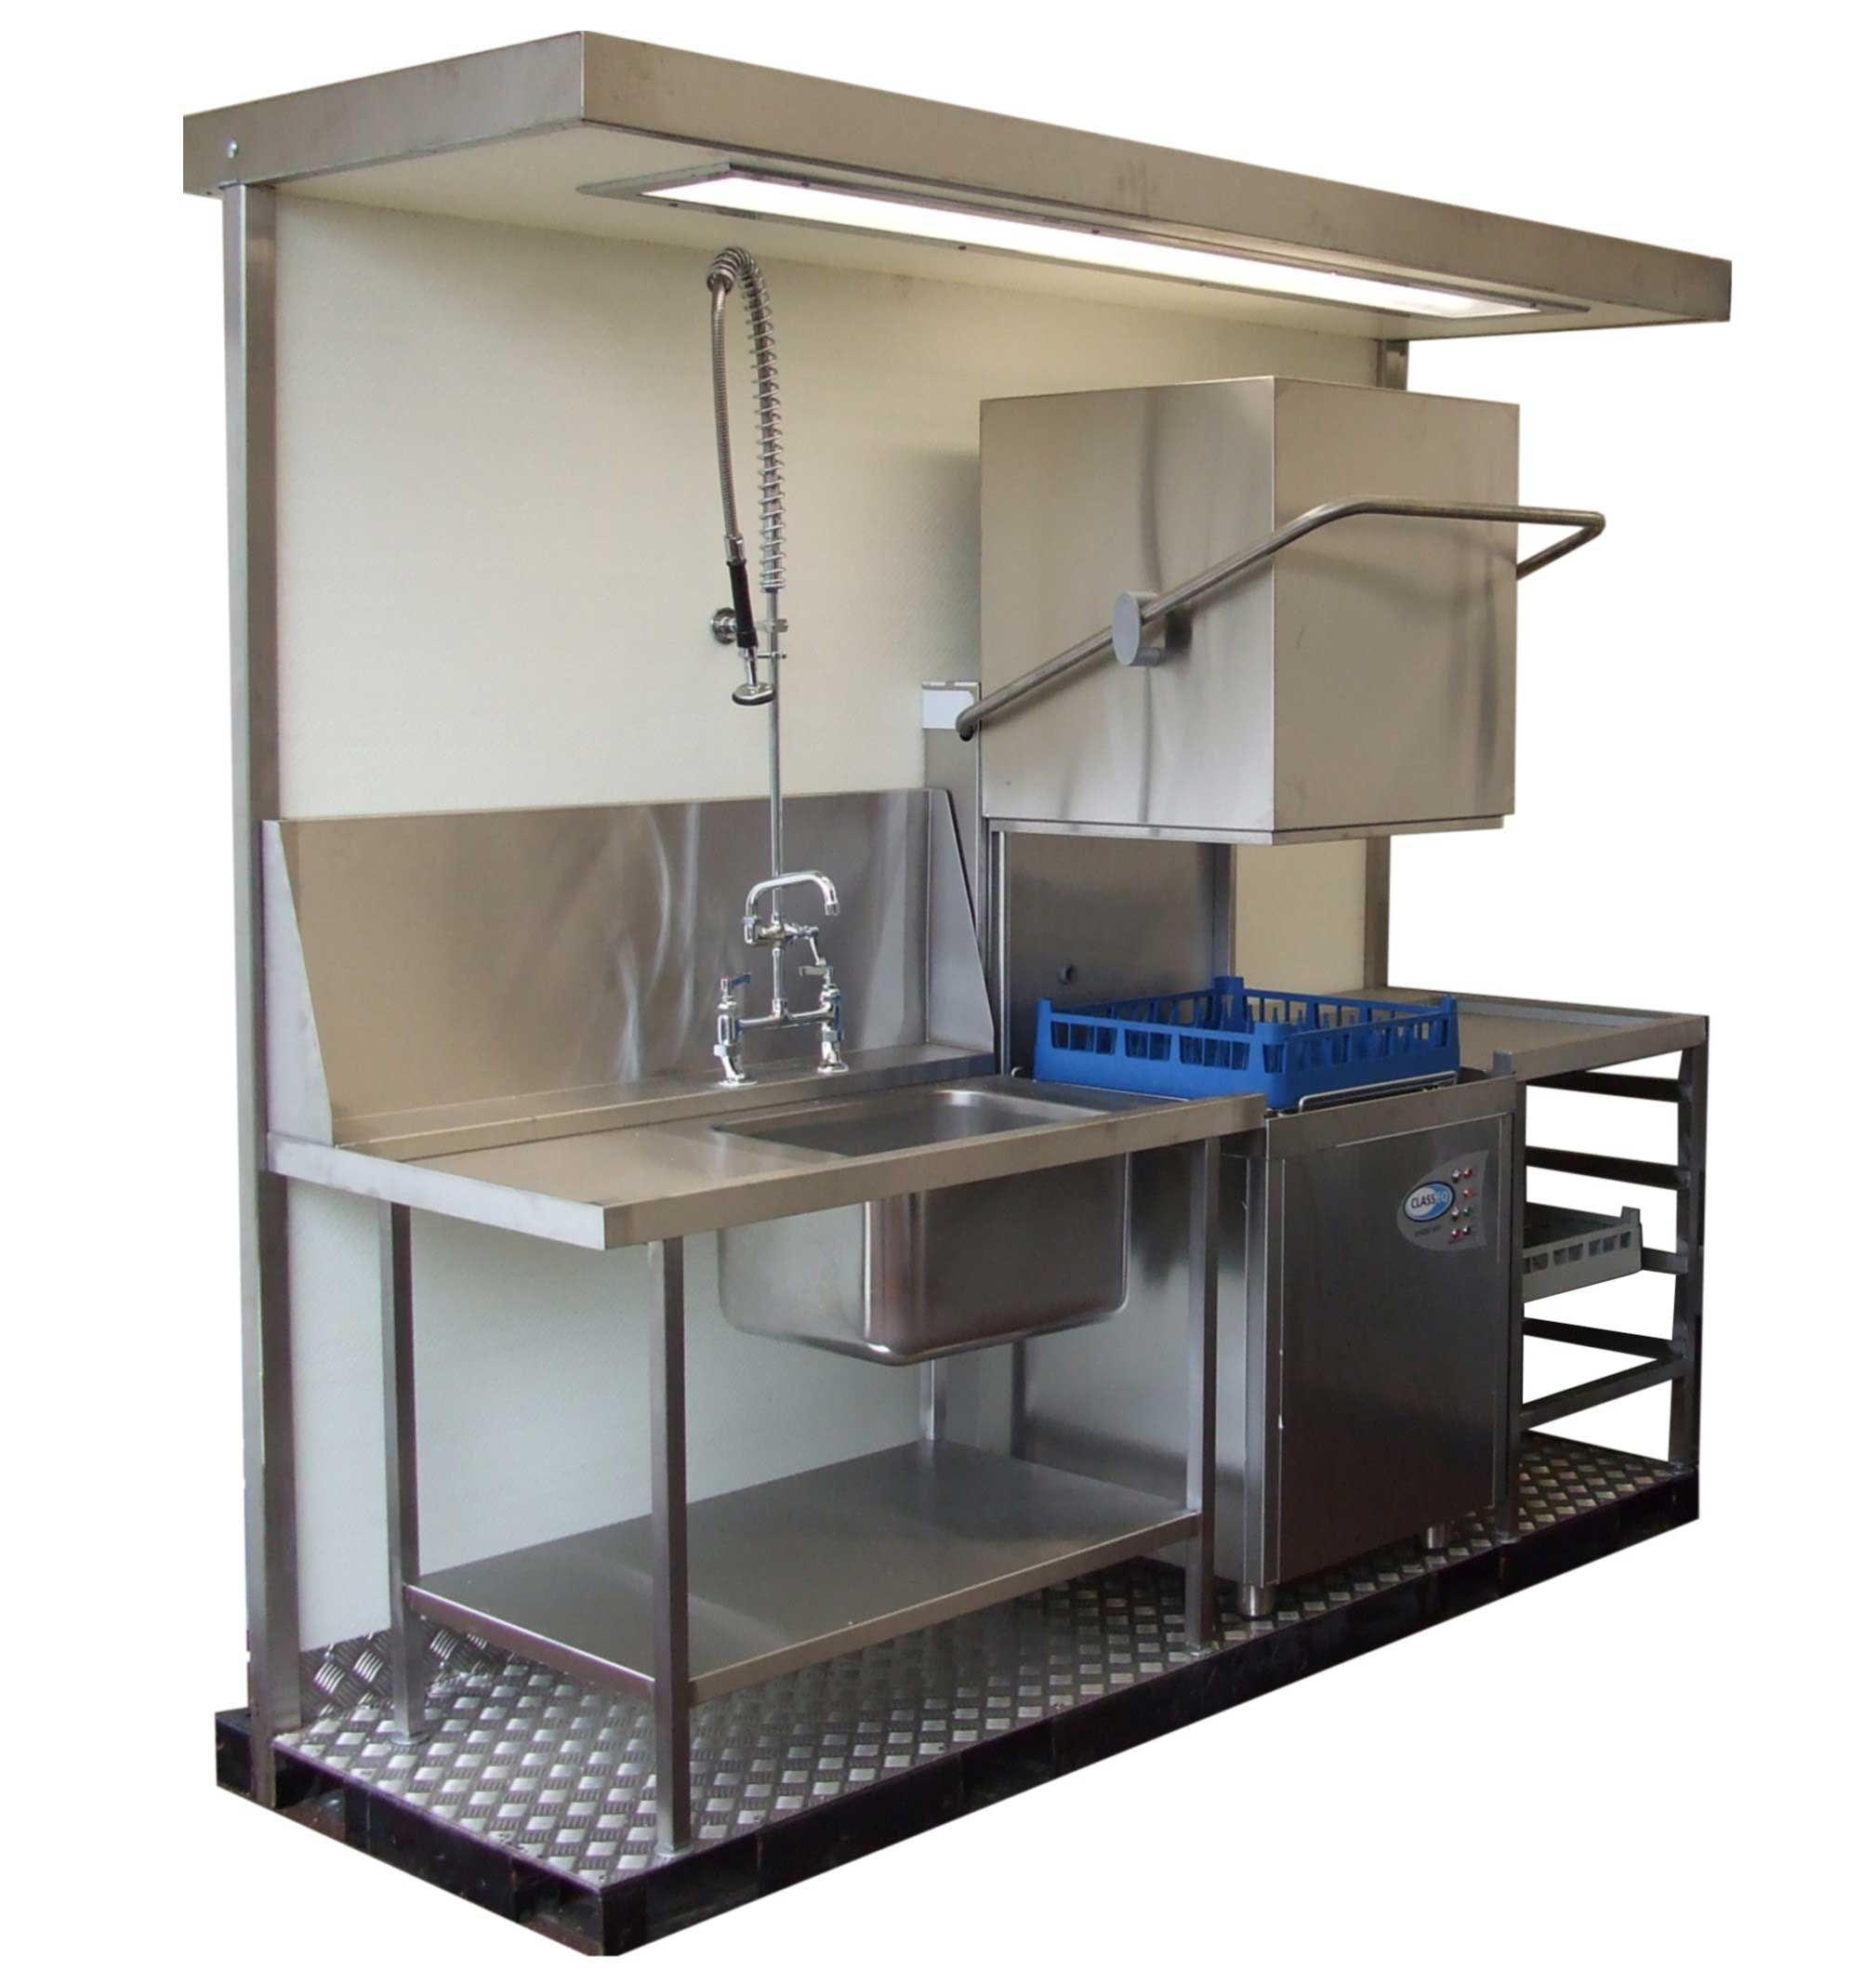 Restaurant Kitchen Units commercial dishwashing layout - google search | ground zero